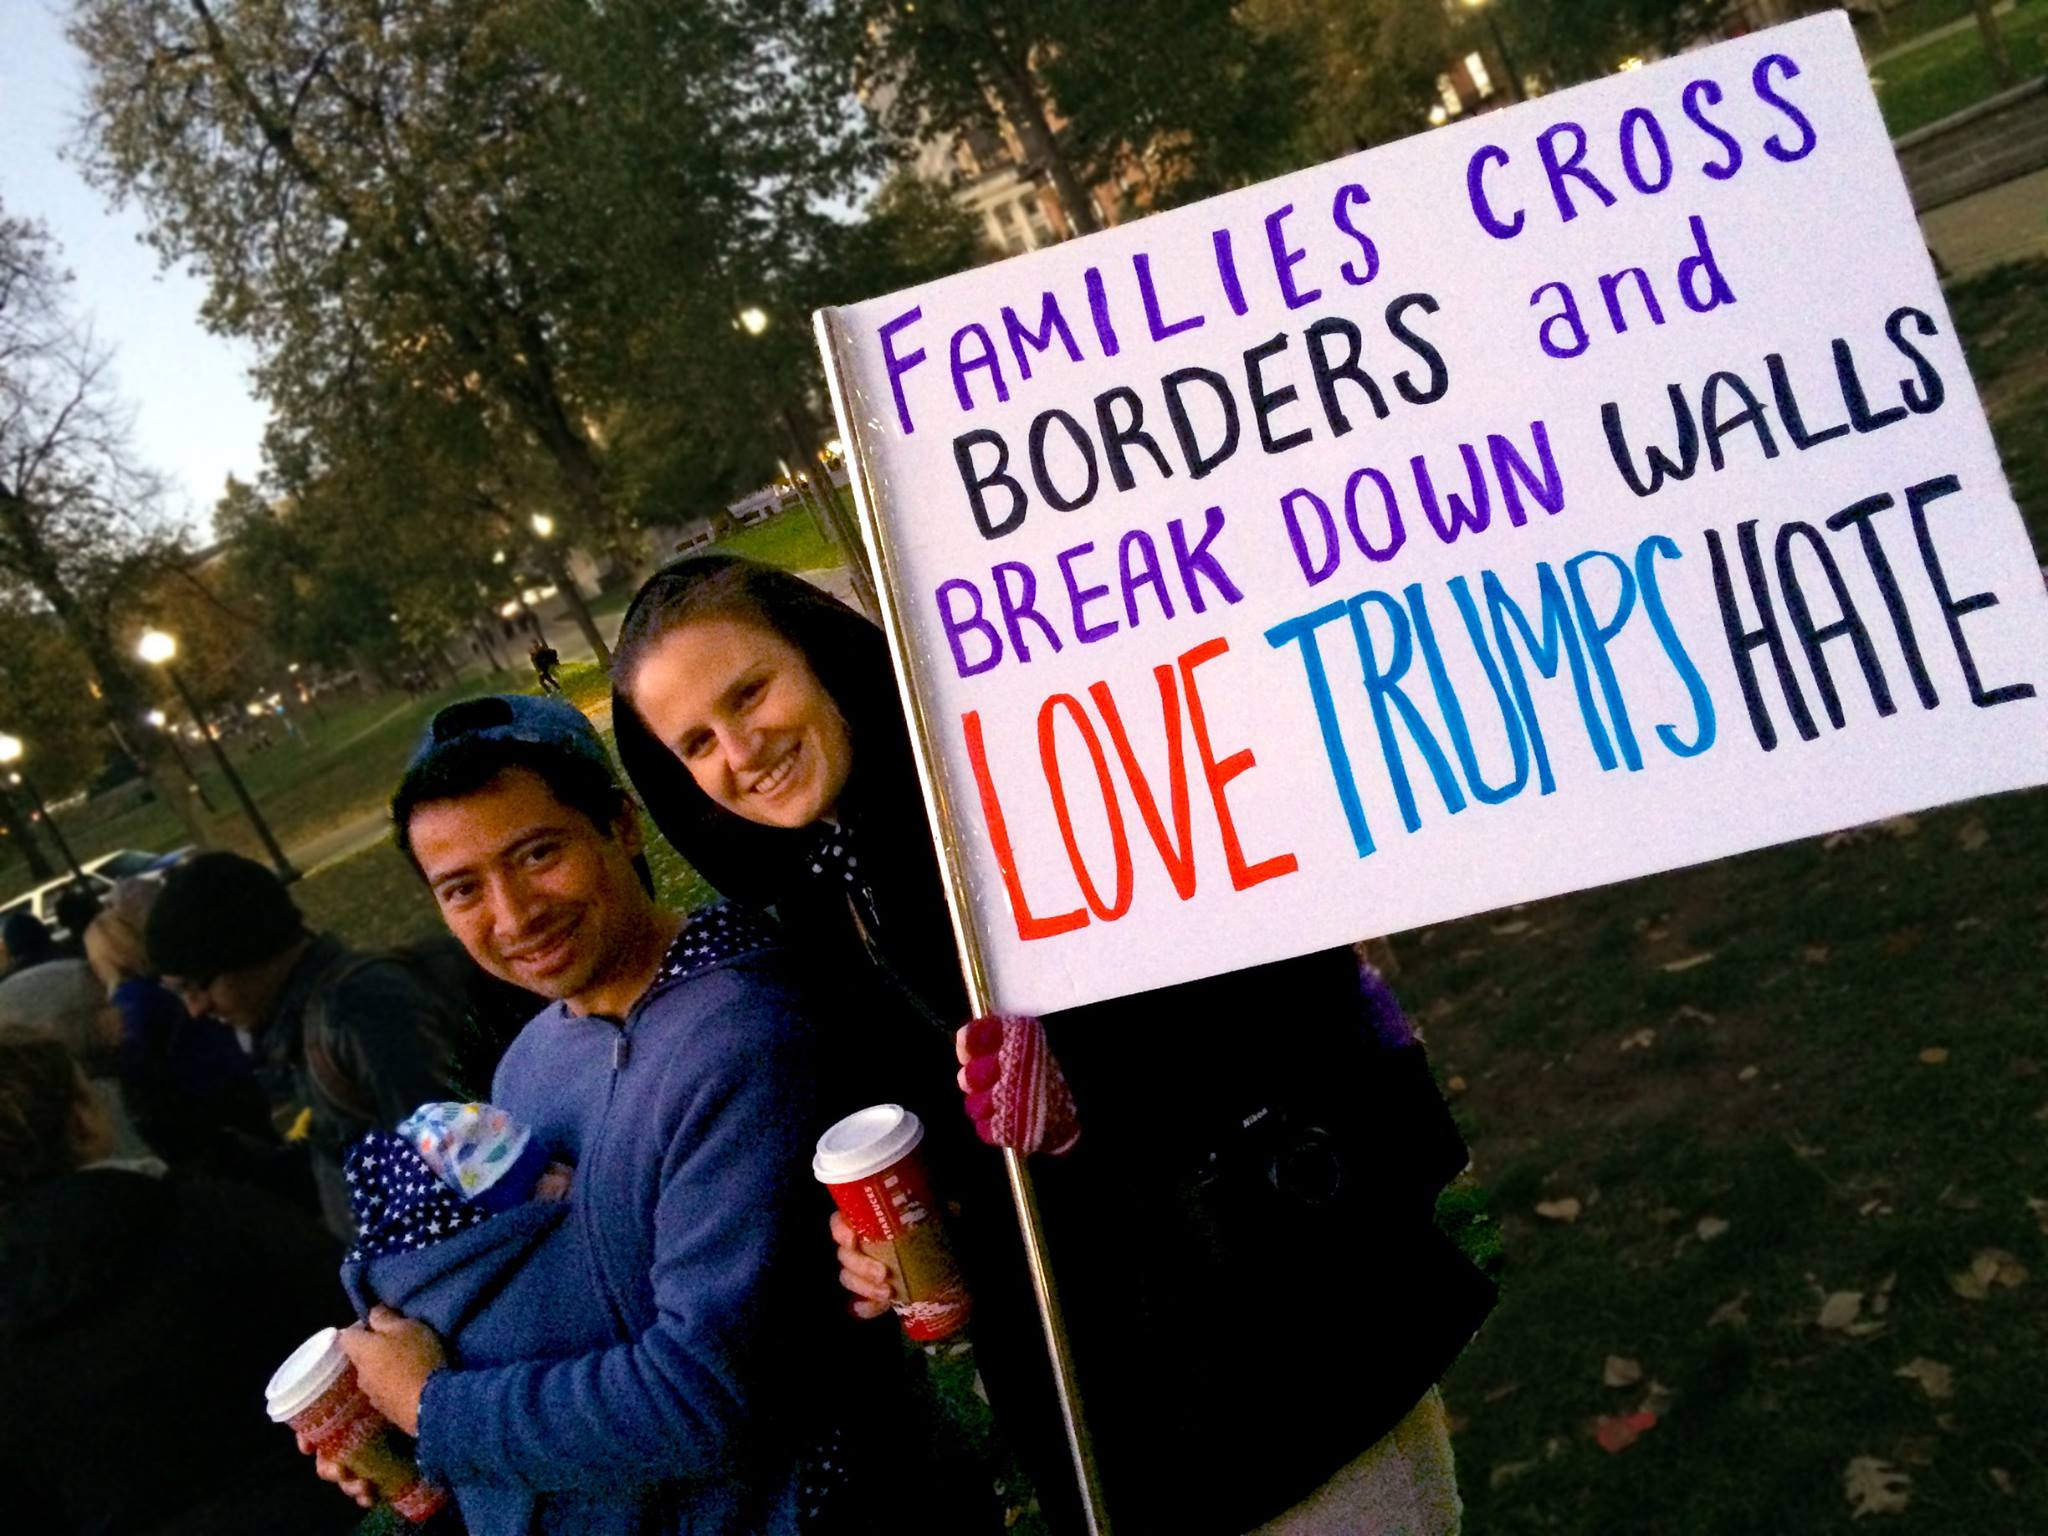 """A multi-racial family at the peace rally with their newborn. """"Families Cross Borders & Break Down Walls"""""""